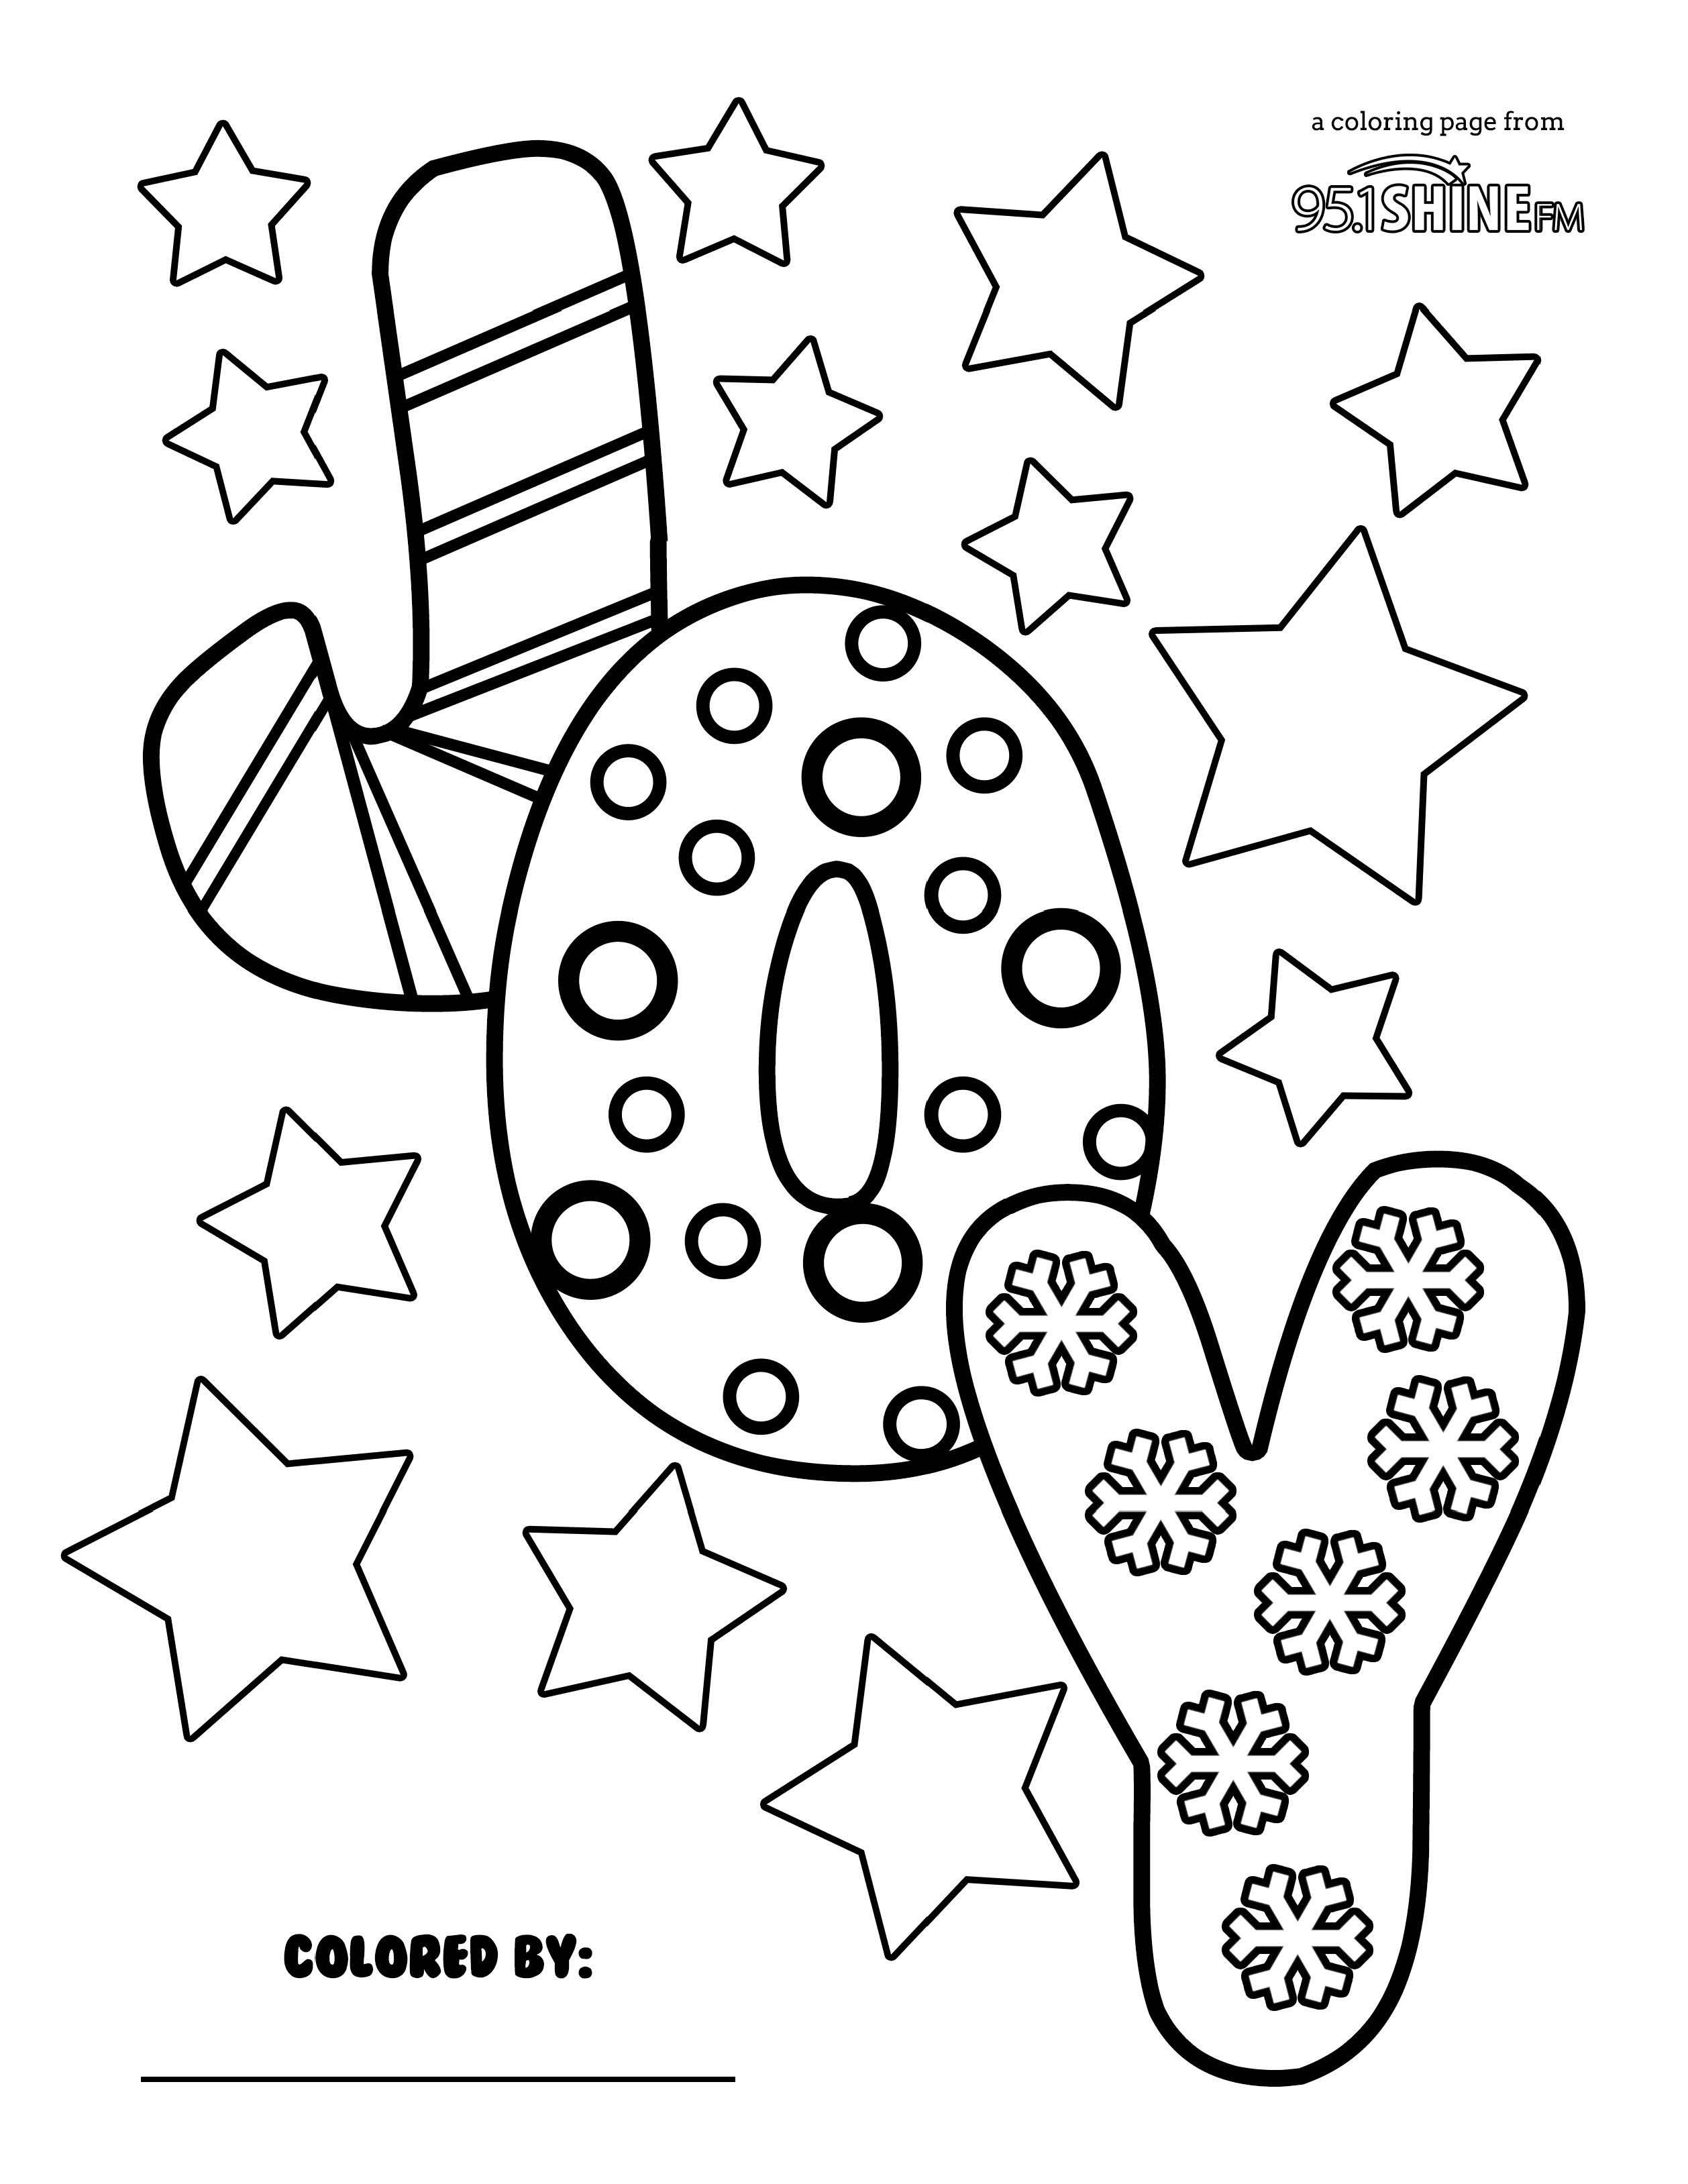 Fruit Of The Spirit Coloring Pages Fresh Coloring Joy Christmas Coloring Sheet Prettyttern New Year Coloring Pages Coloring Pages Printable Coloring Pages